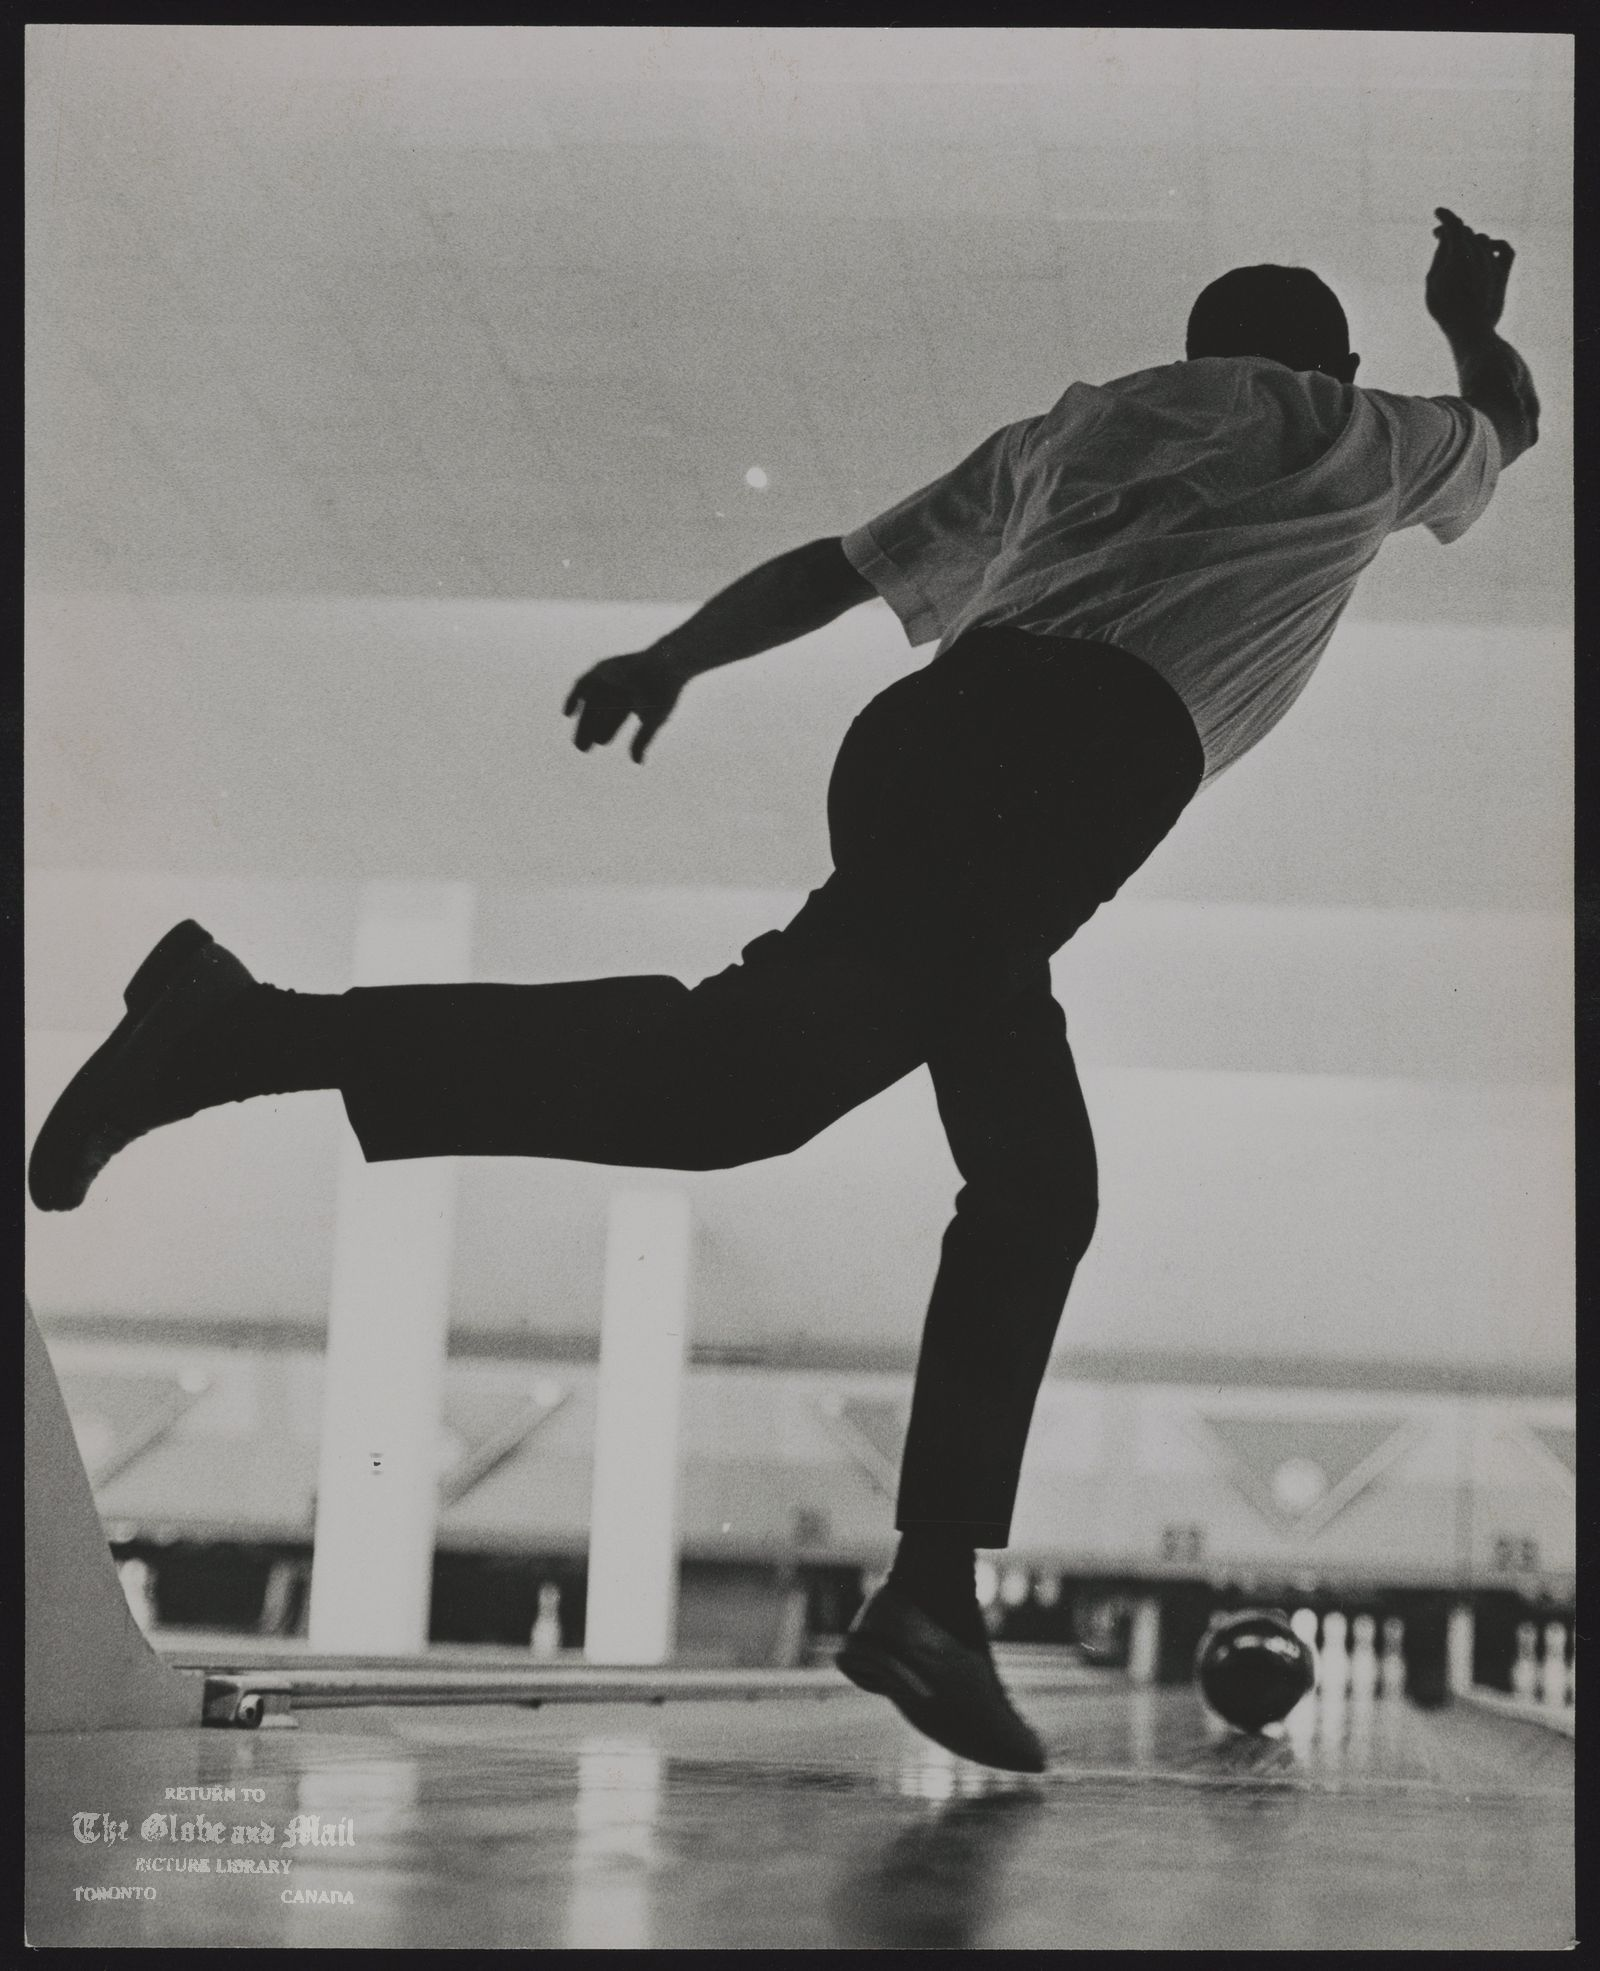 The notes transcribed from the back of this photograph are as follows: BOWLING